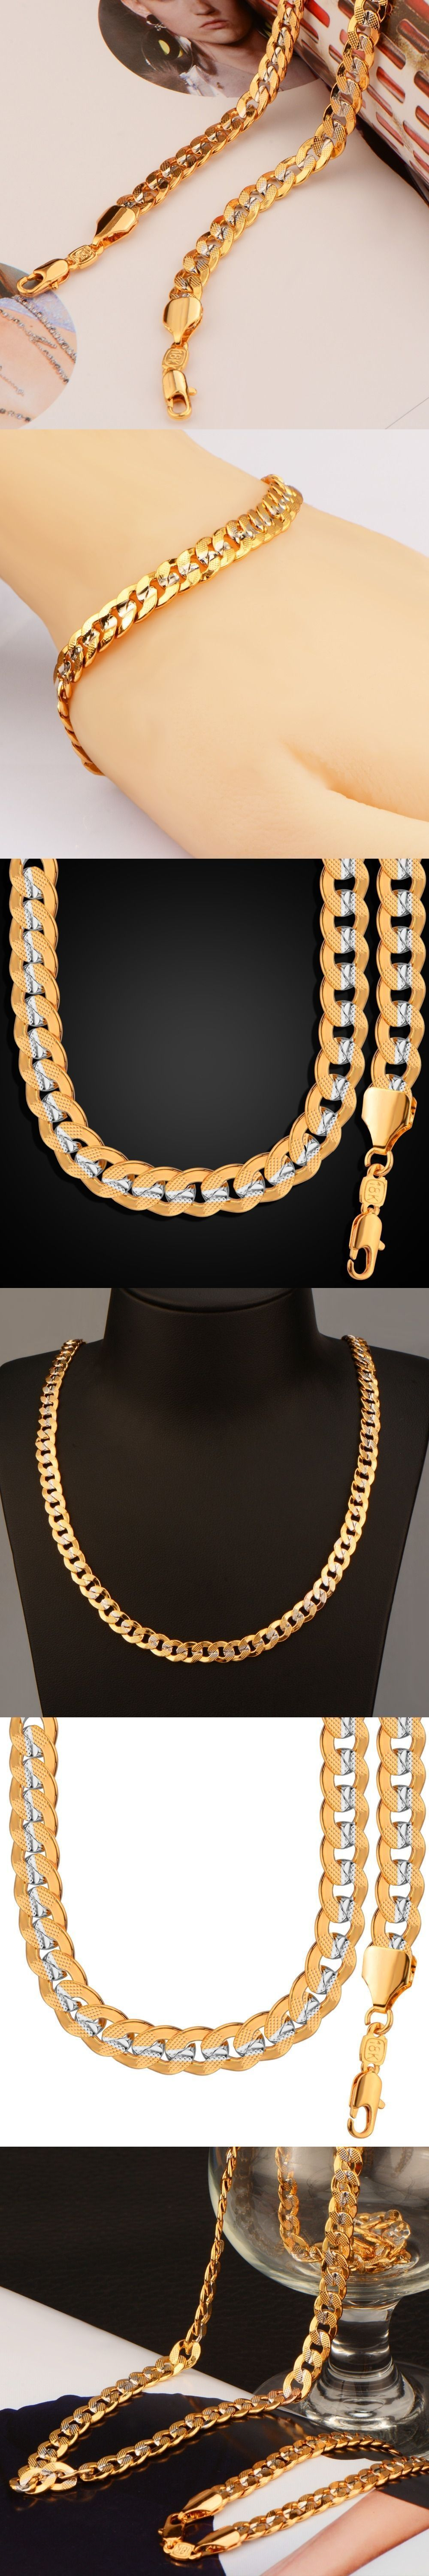 New fashion two tone gold color necklace set party jewelry wholesale